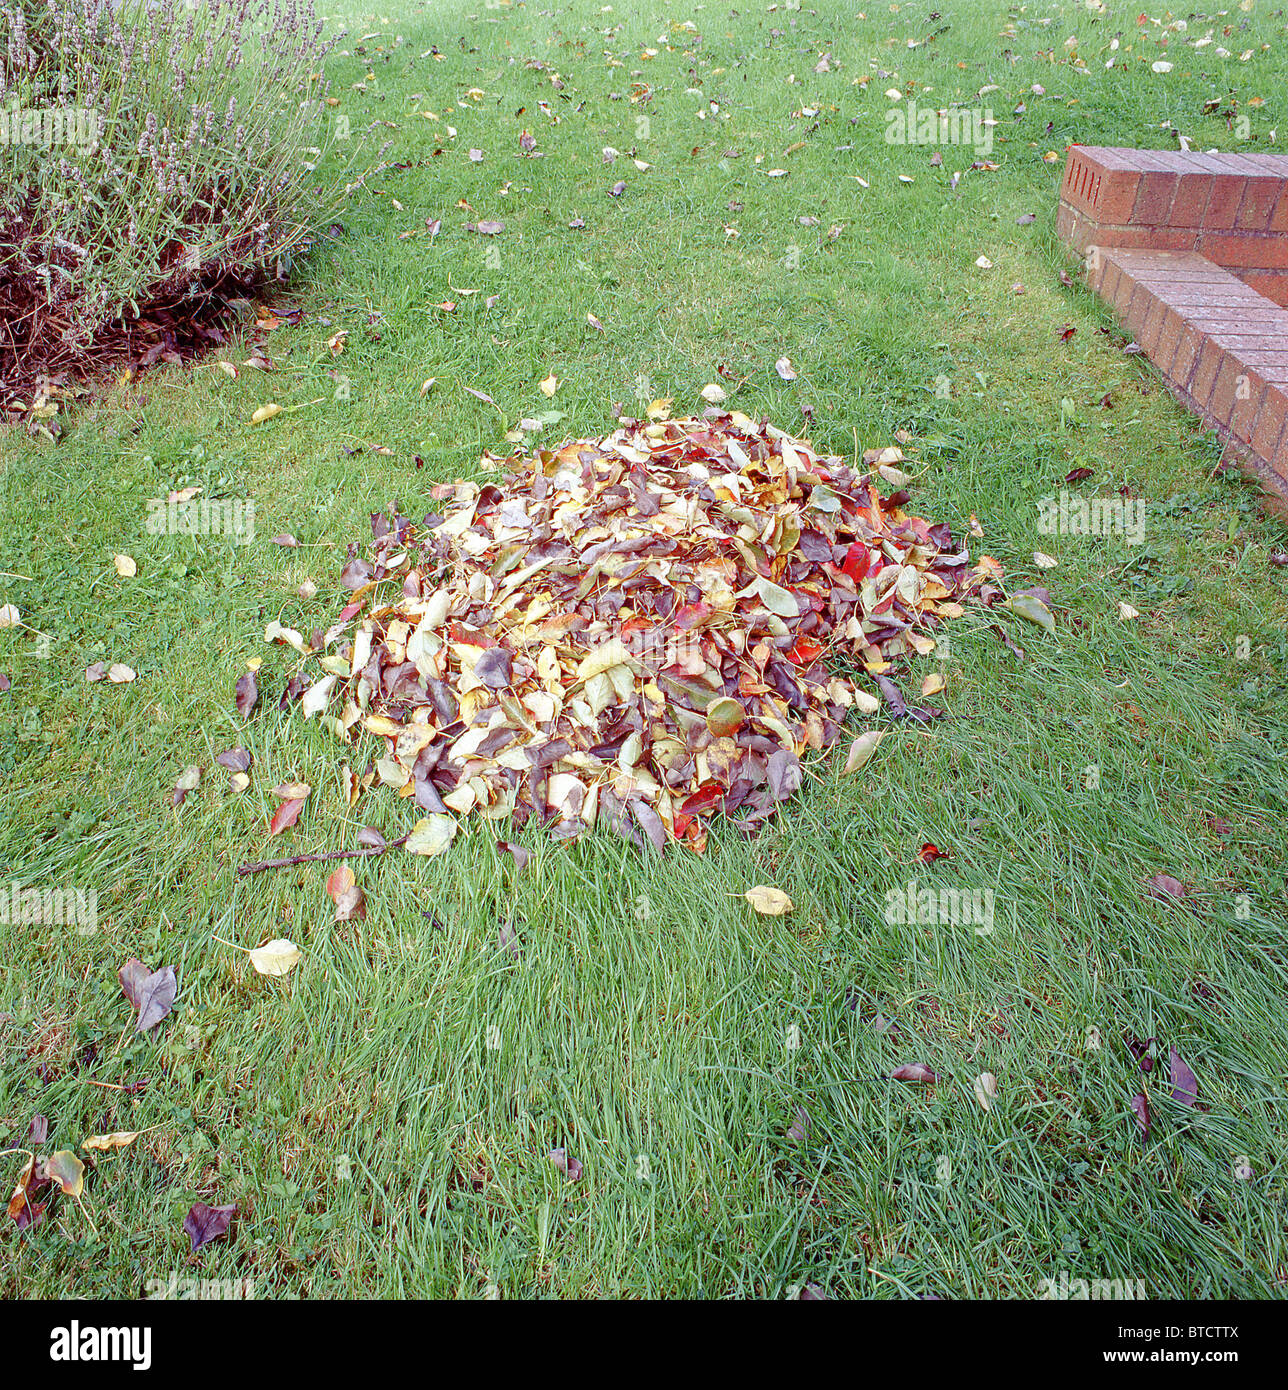 Pile of Leaves on a domestic lawn - Stock Image